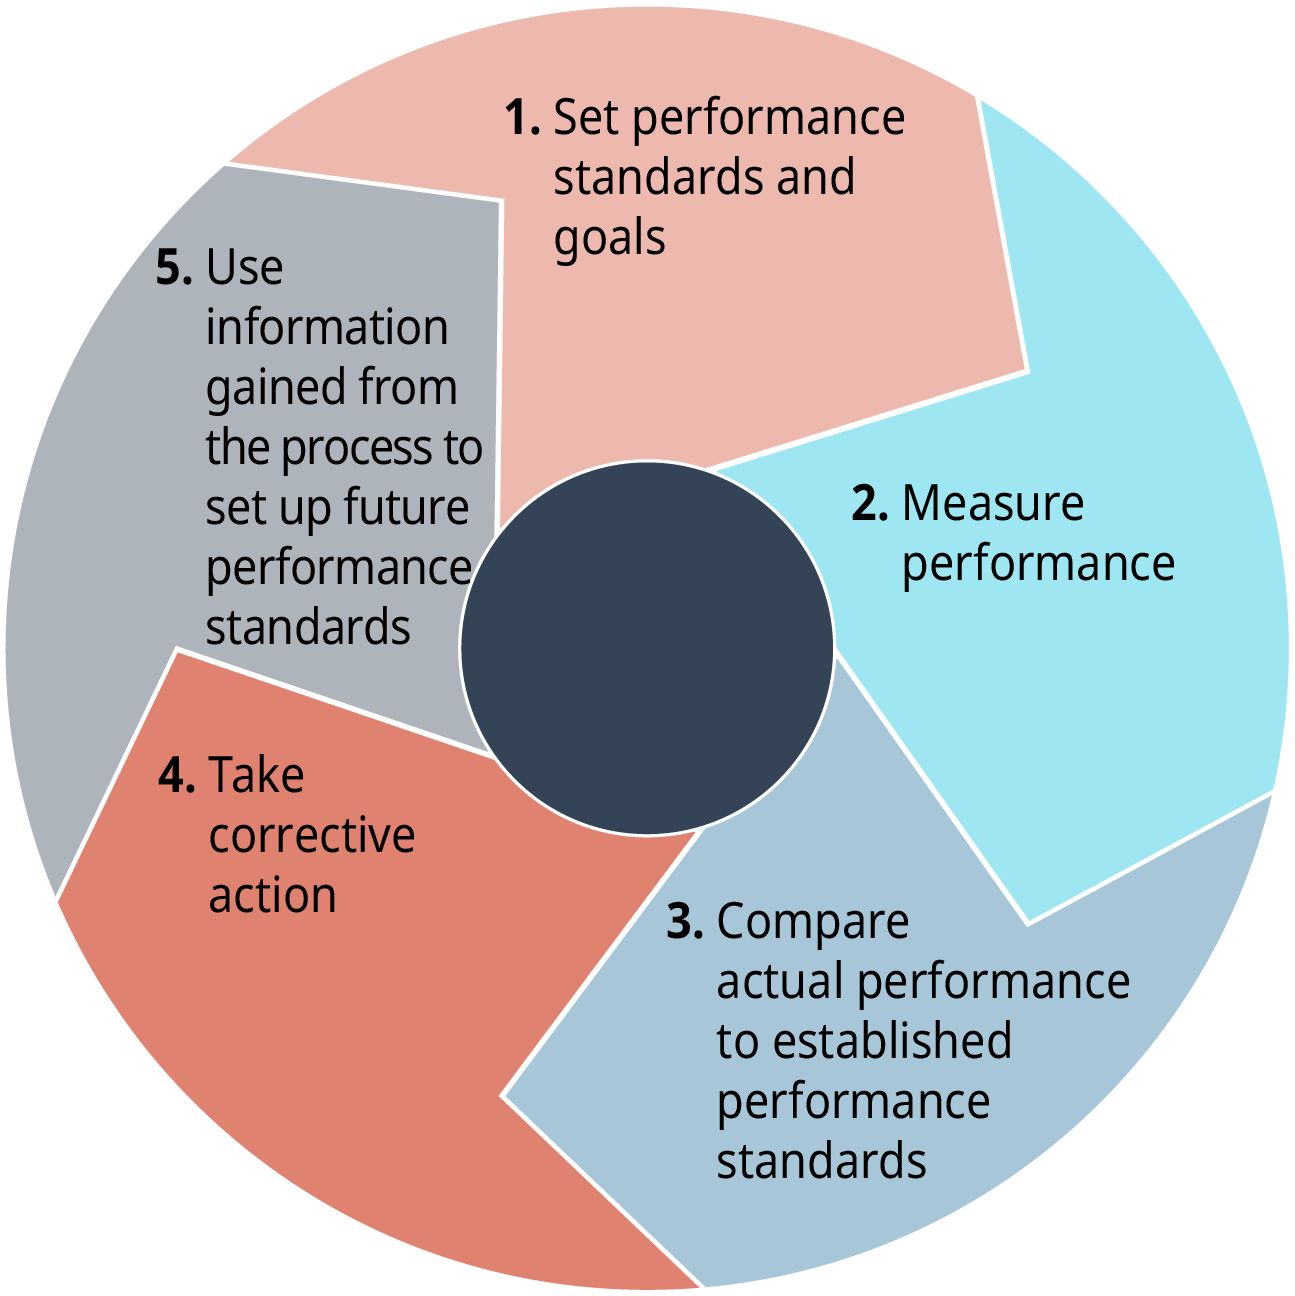 Each stage flows into the next. Stage 1 says, set performance standards and goals. Stage 2 says, measure performance. Stage 3 says, compare actual performance to established performance standards. Stage 4 says, take corrective action. Stage 5 says, use information gained from the process to set up future performance standards.